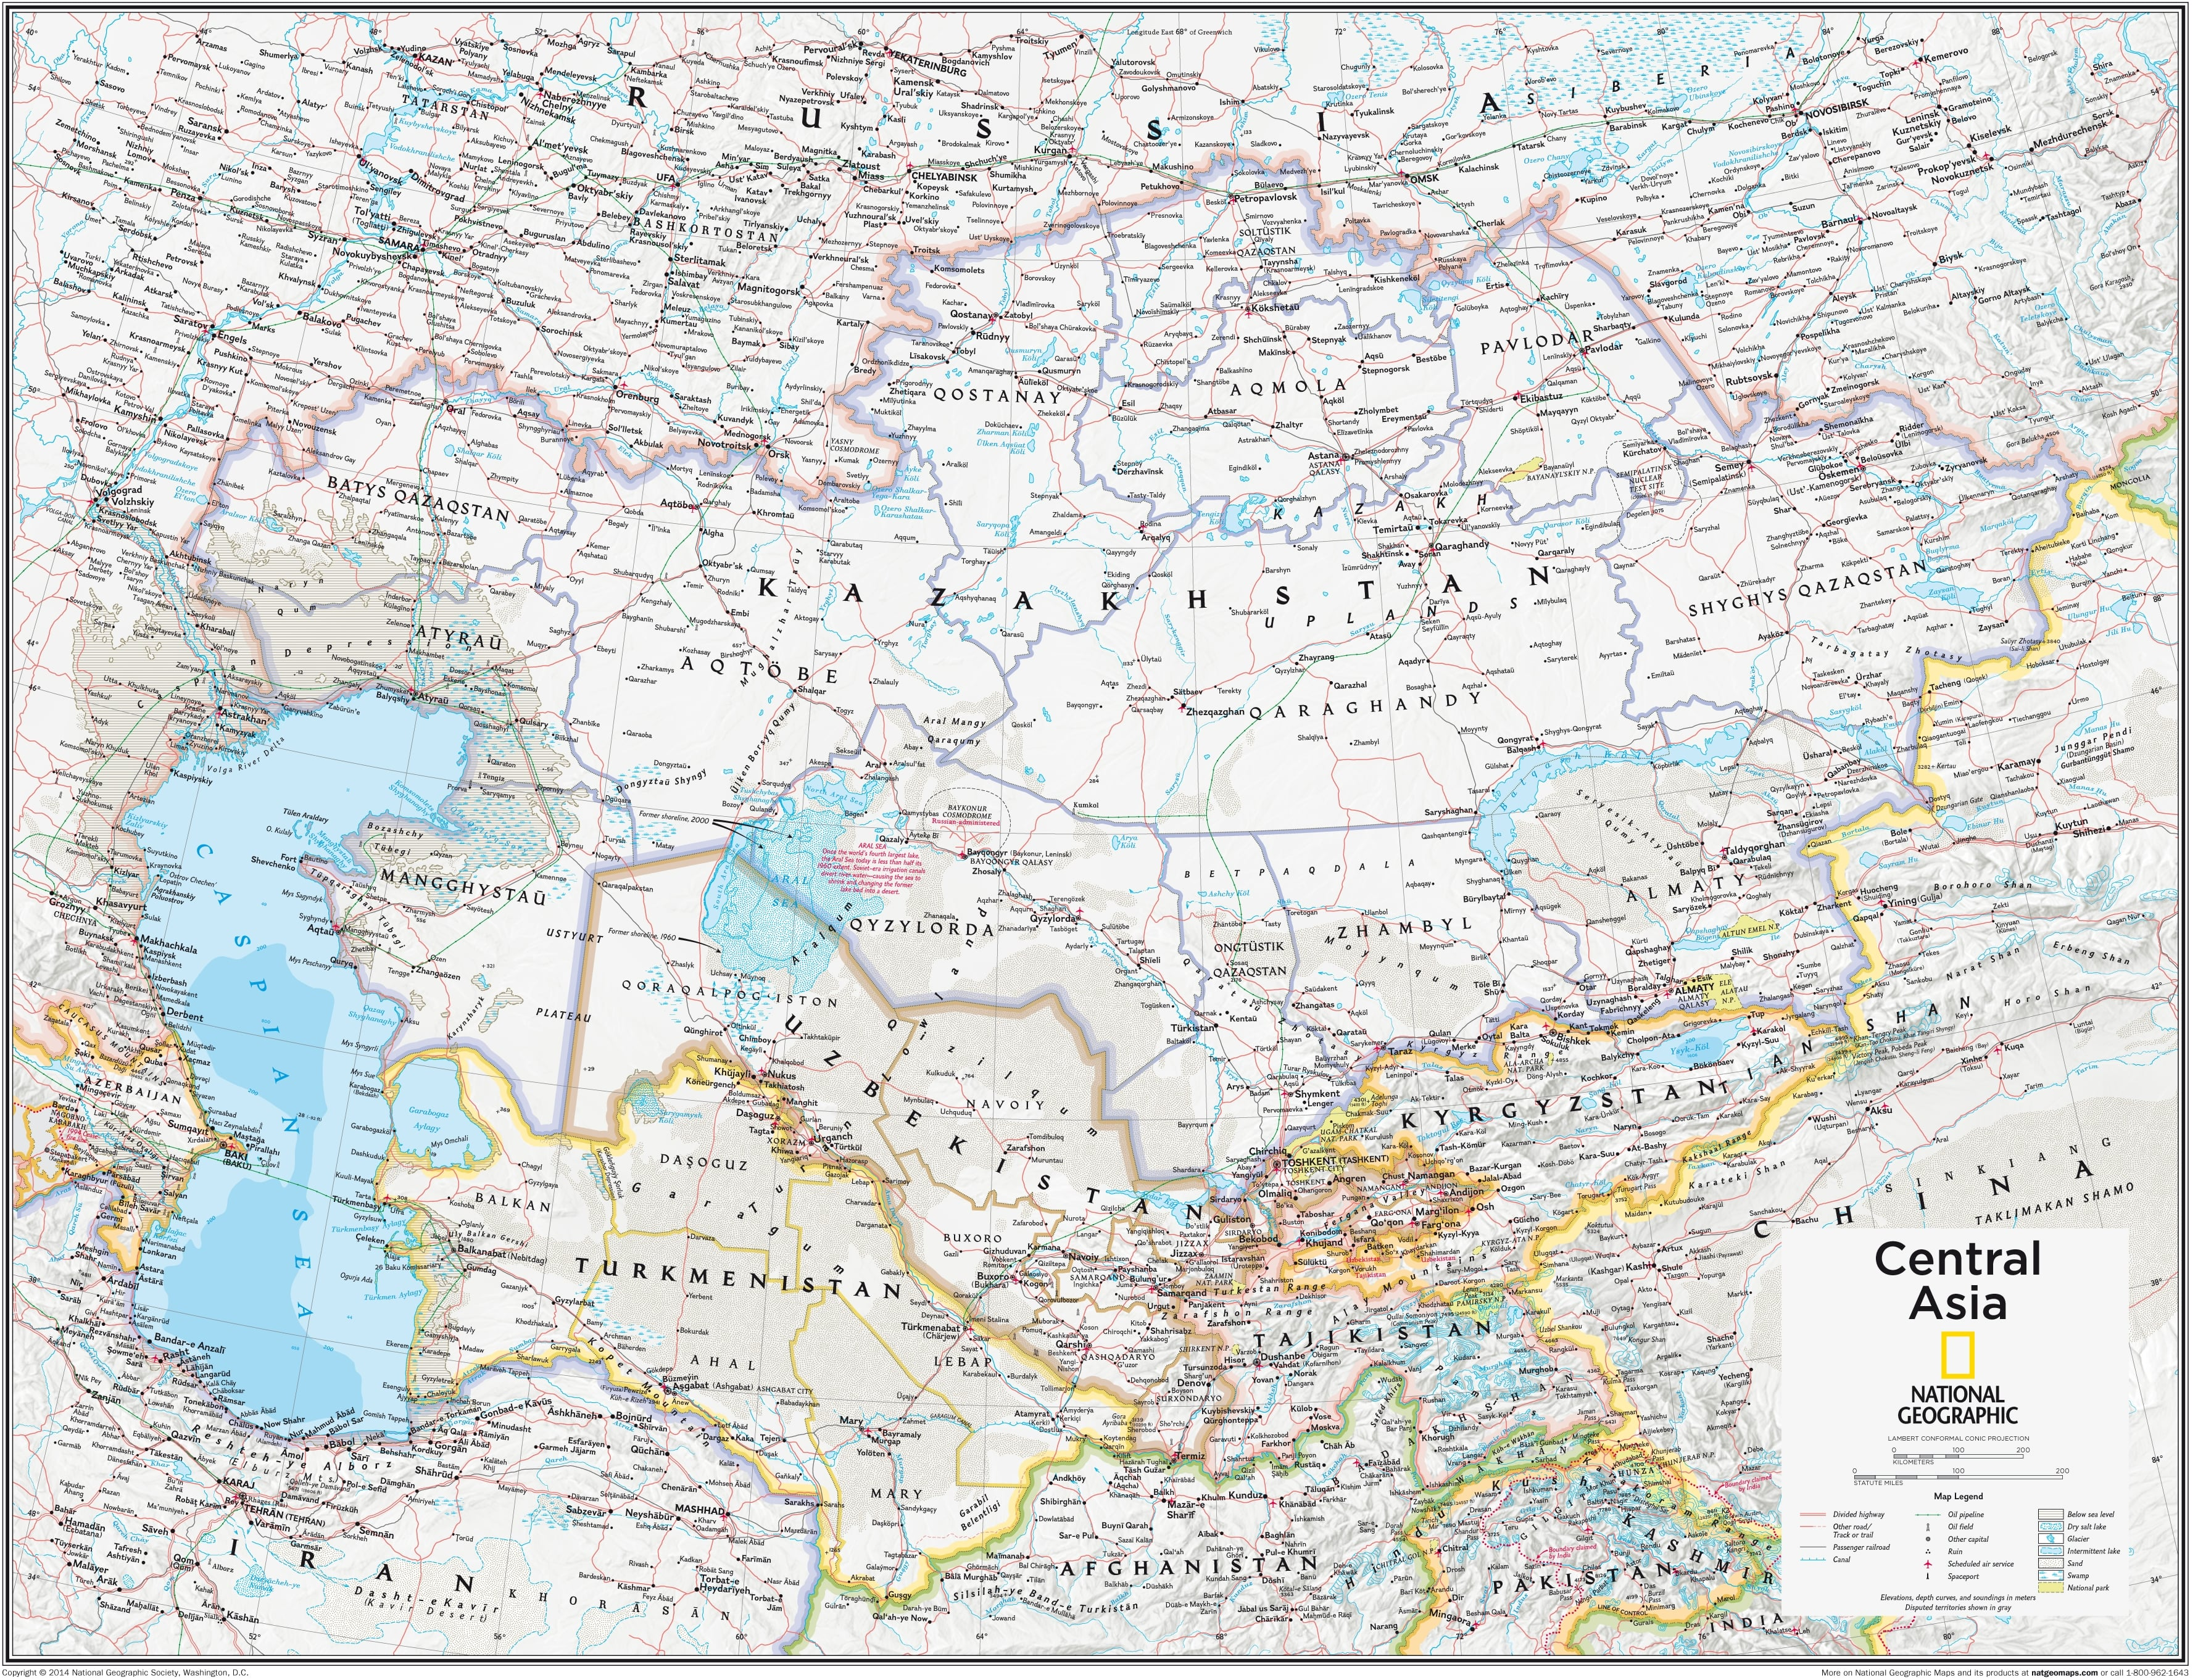 NGS Central Asia Wall Map